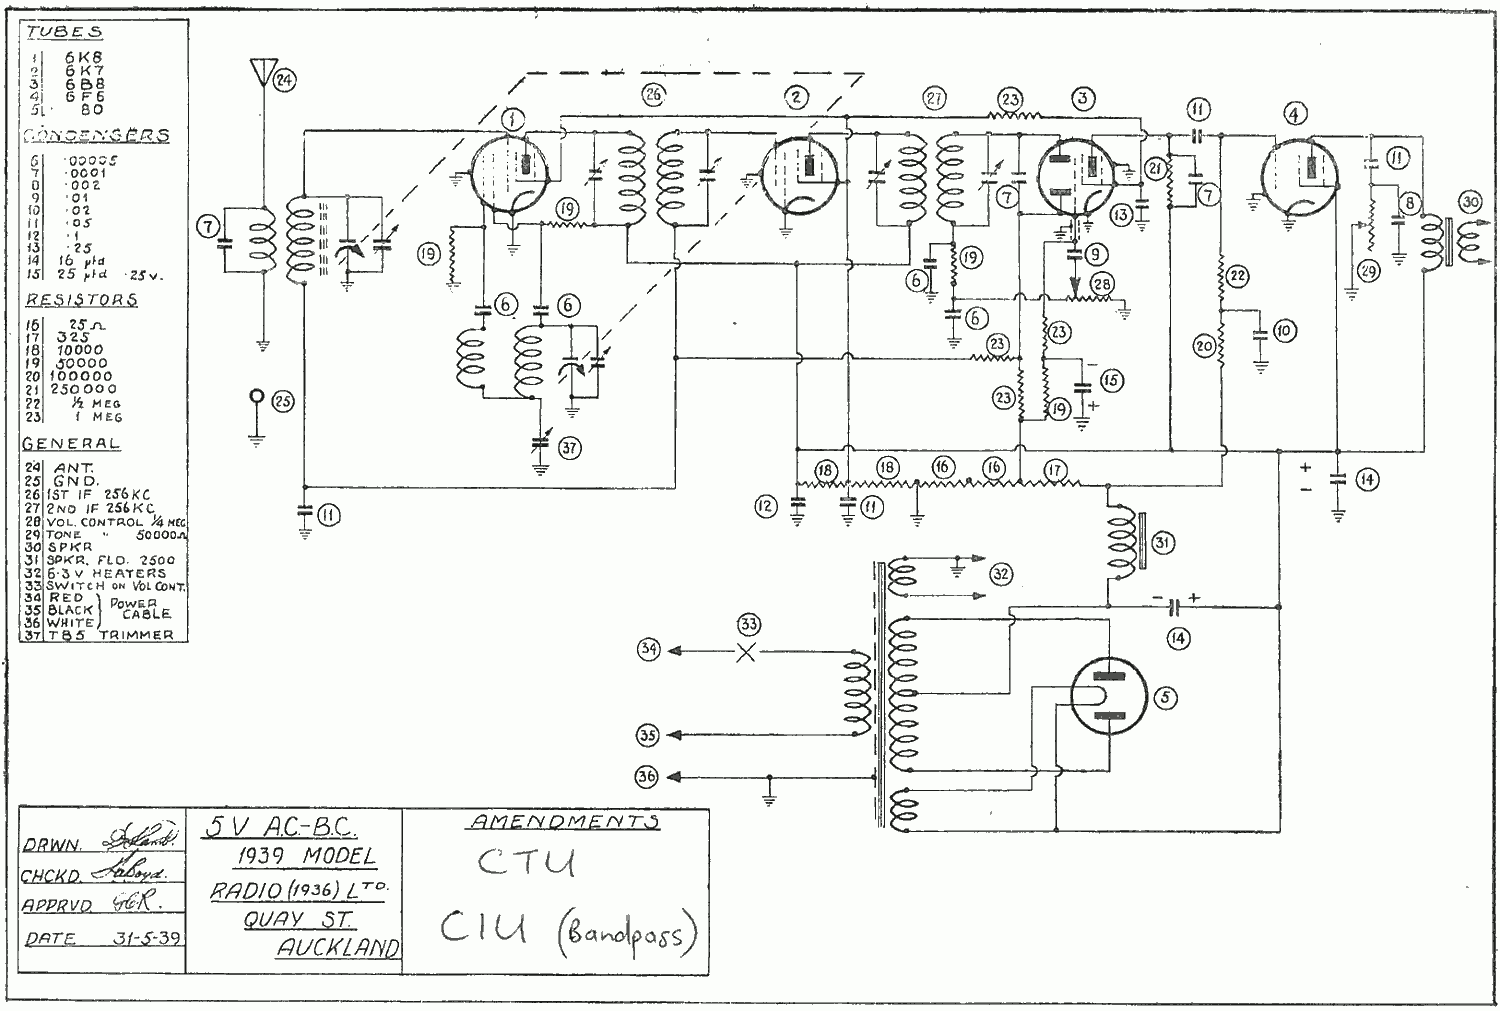 1939 Ultimate CIU and CTU Schematic